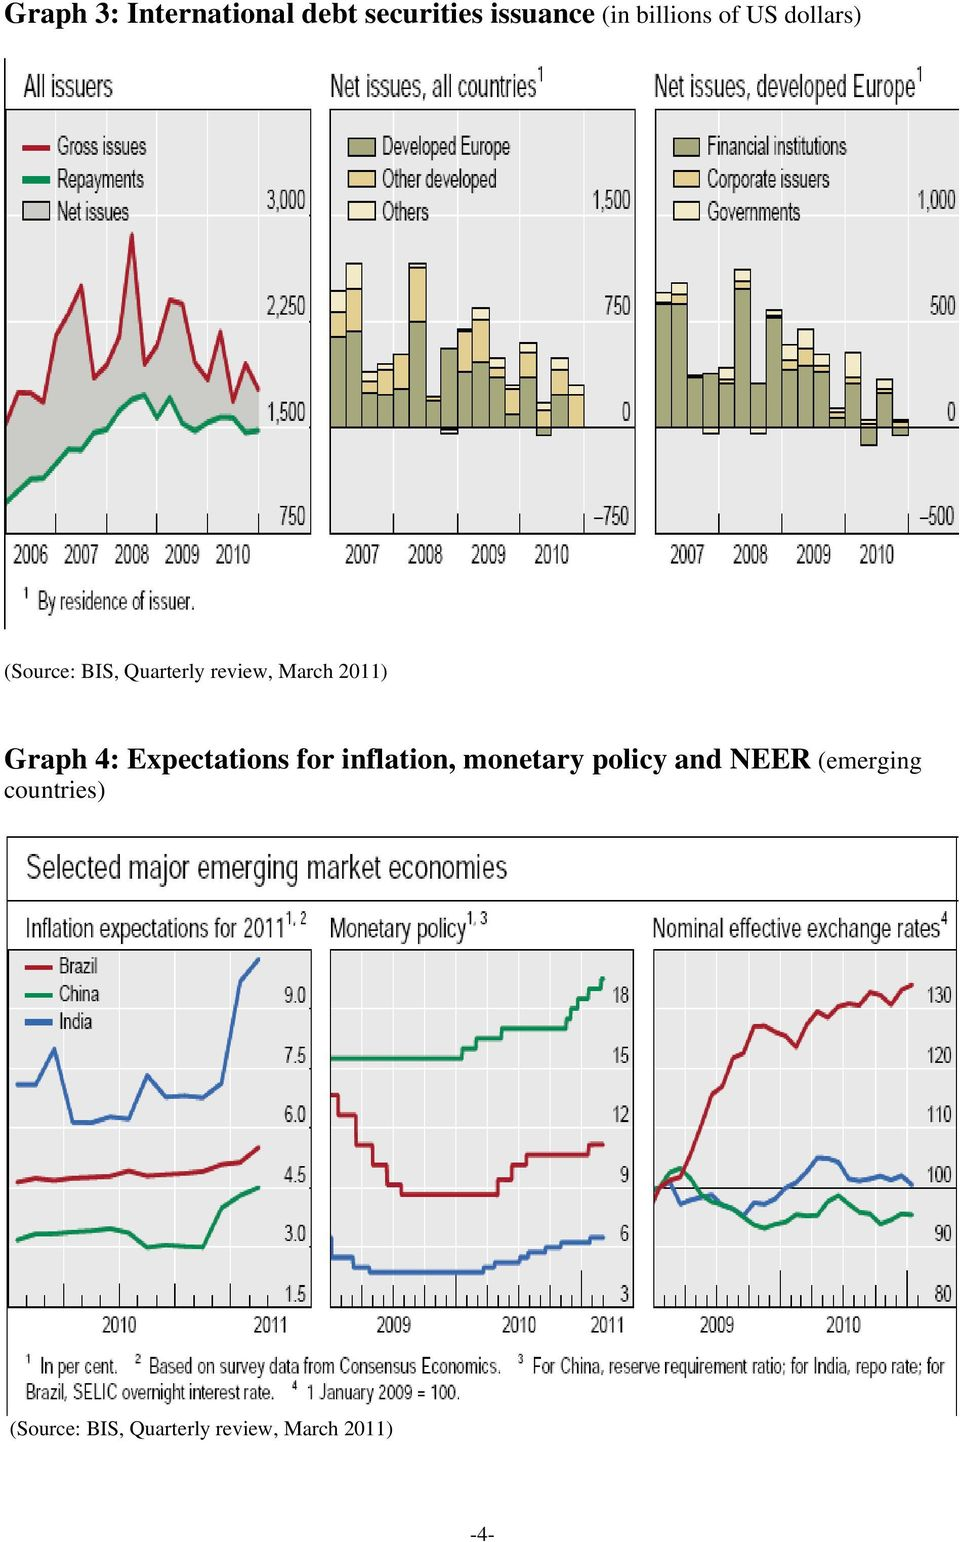 Graph 4: Expectations for inflation, monetary policy and NEER